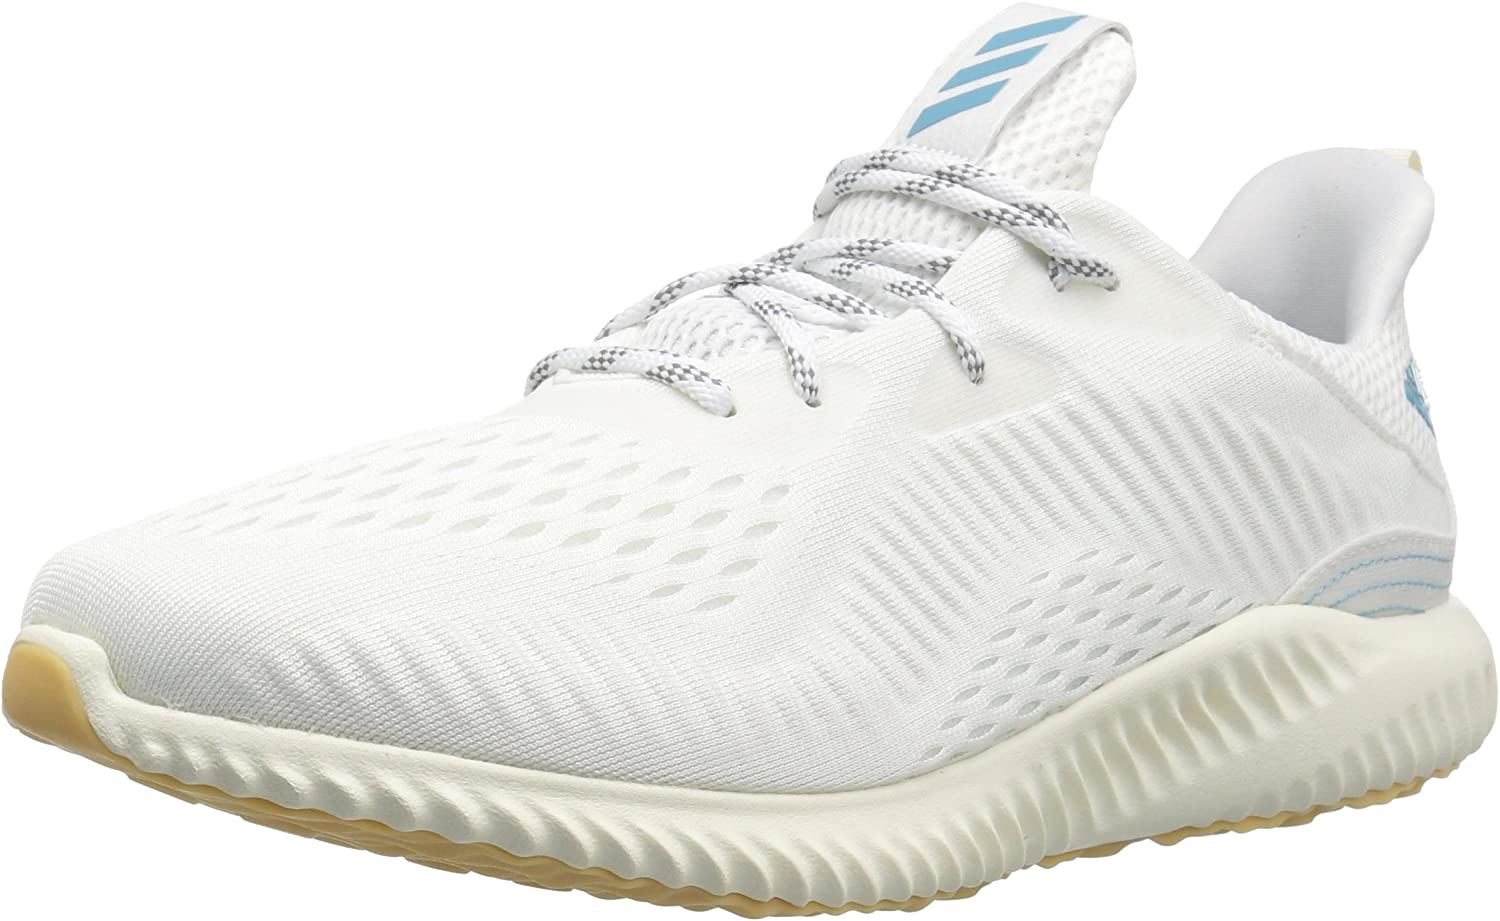 adidas Men s Alphabounce 1 Parley Running Shoe